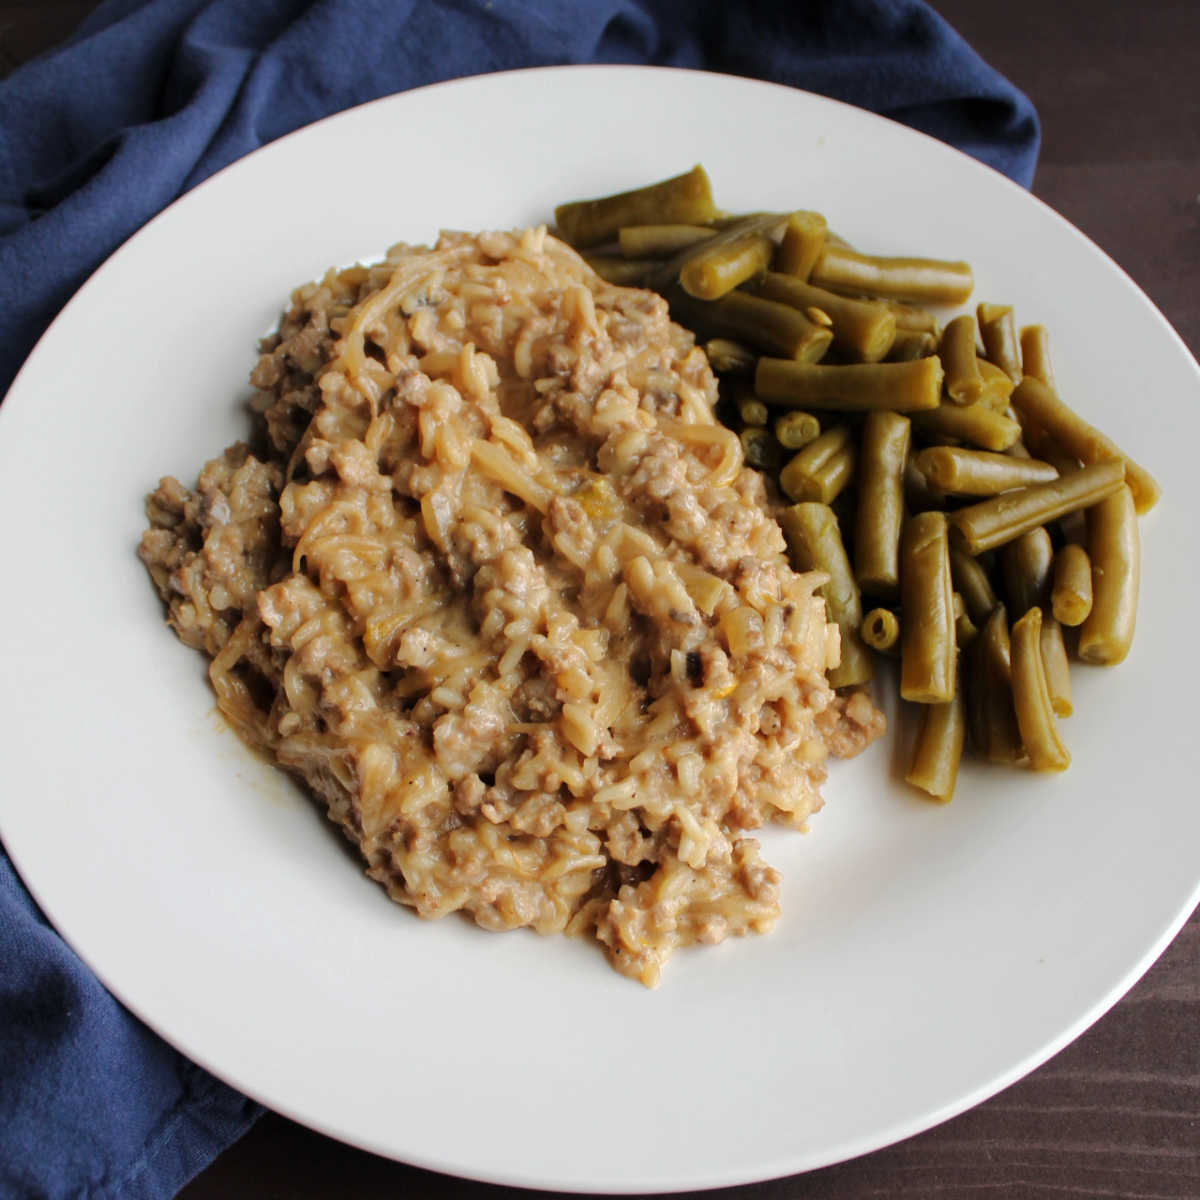 plate of creamy rice based pork chop suey and green beans ready to eat